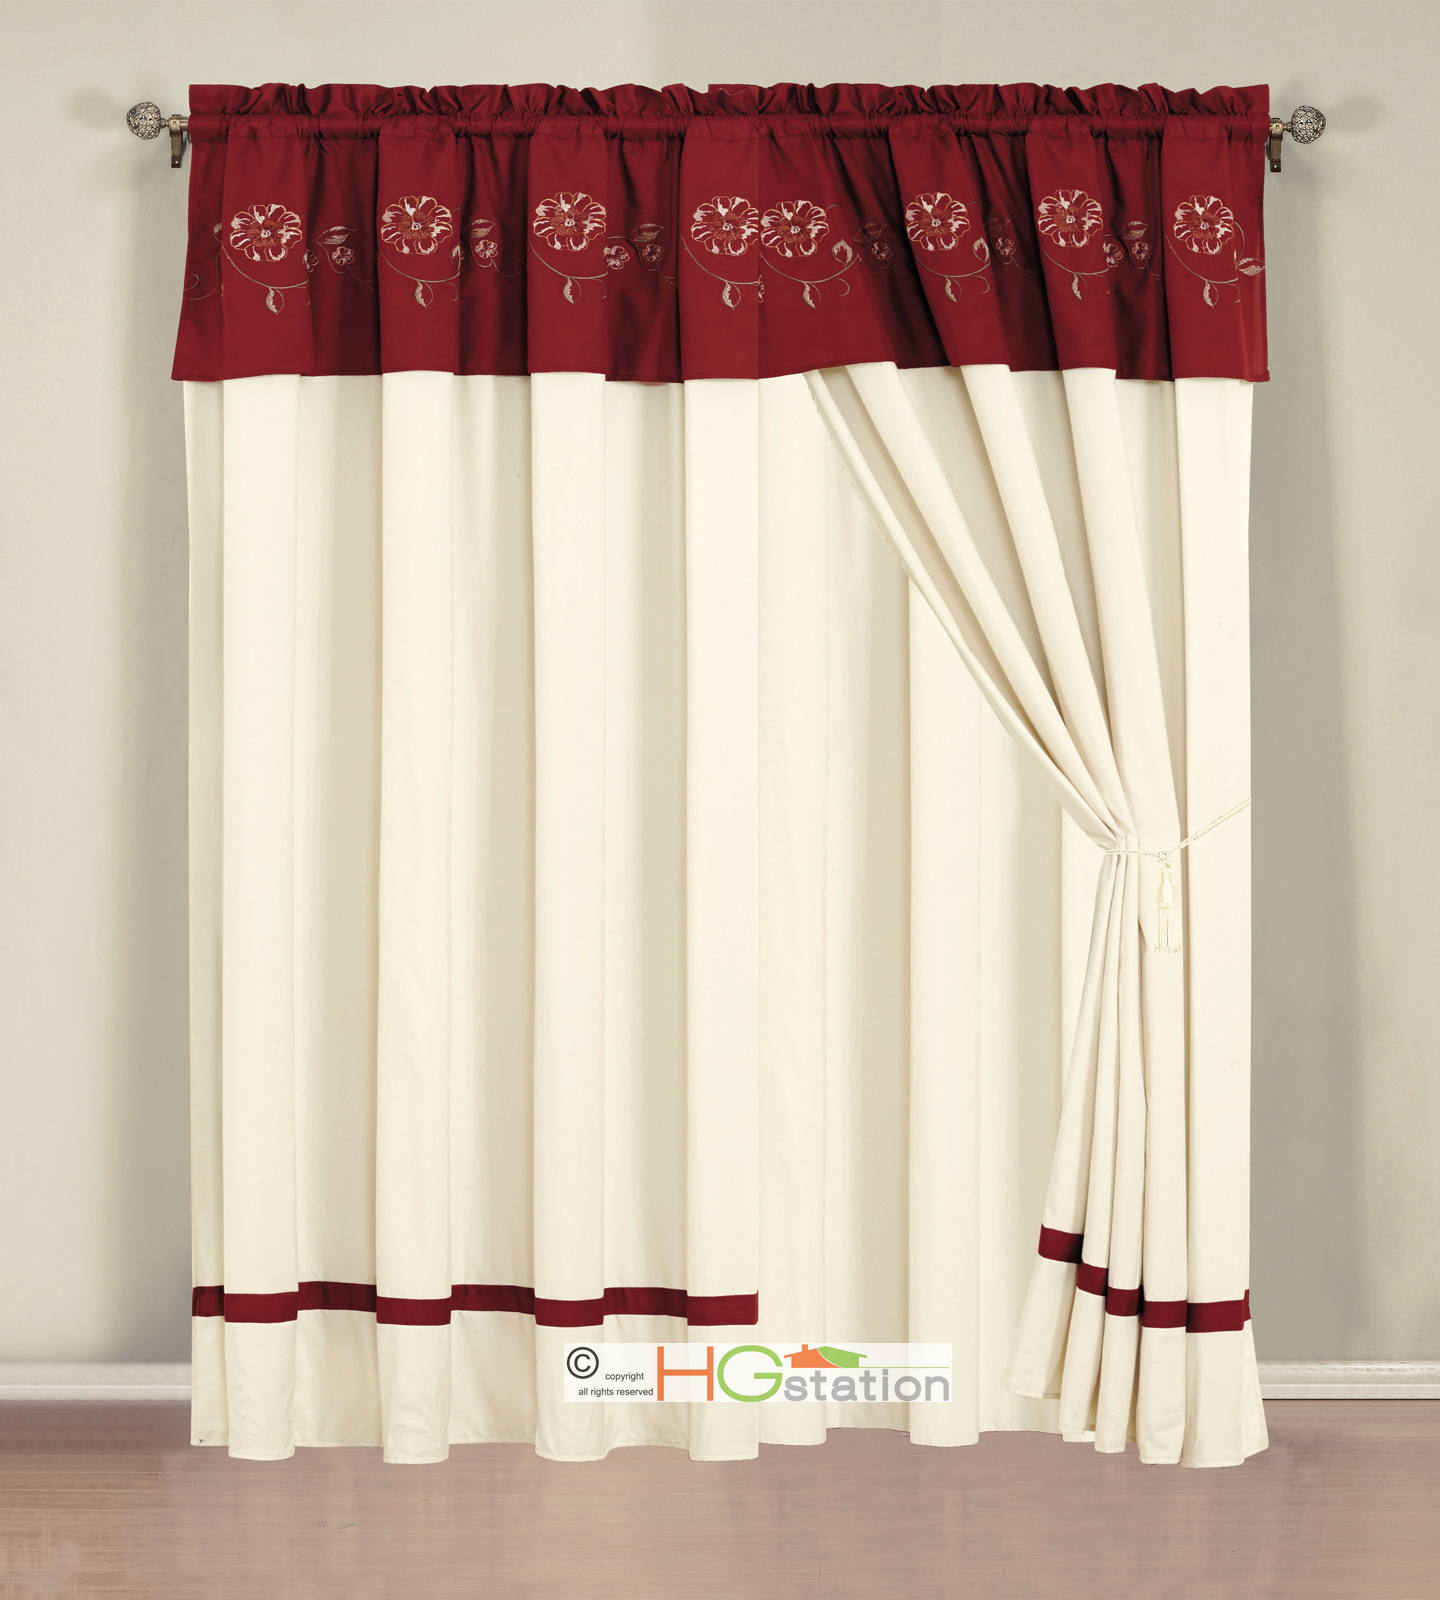 4 P Embroidery Summer Floral Blossom Vine Curtain Set